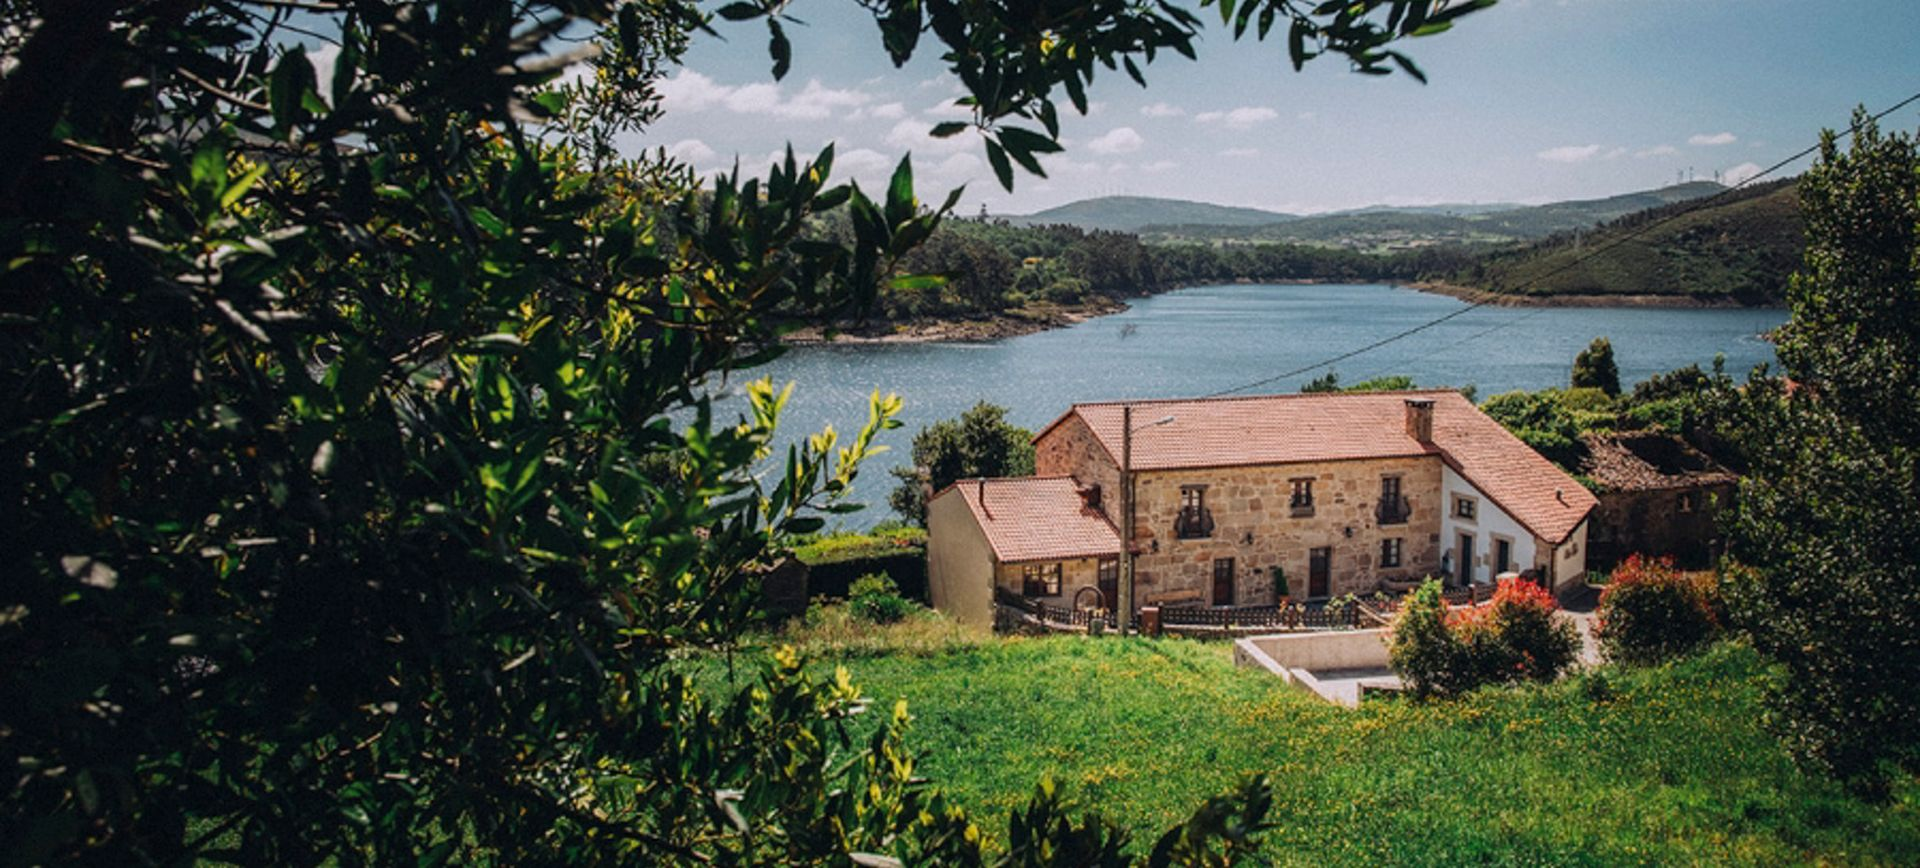 Galicia mountains beaches wedding in Spain - accommodation